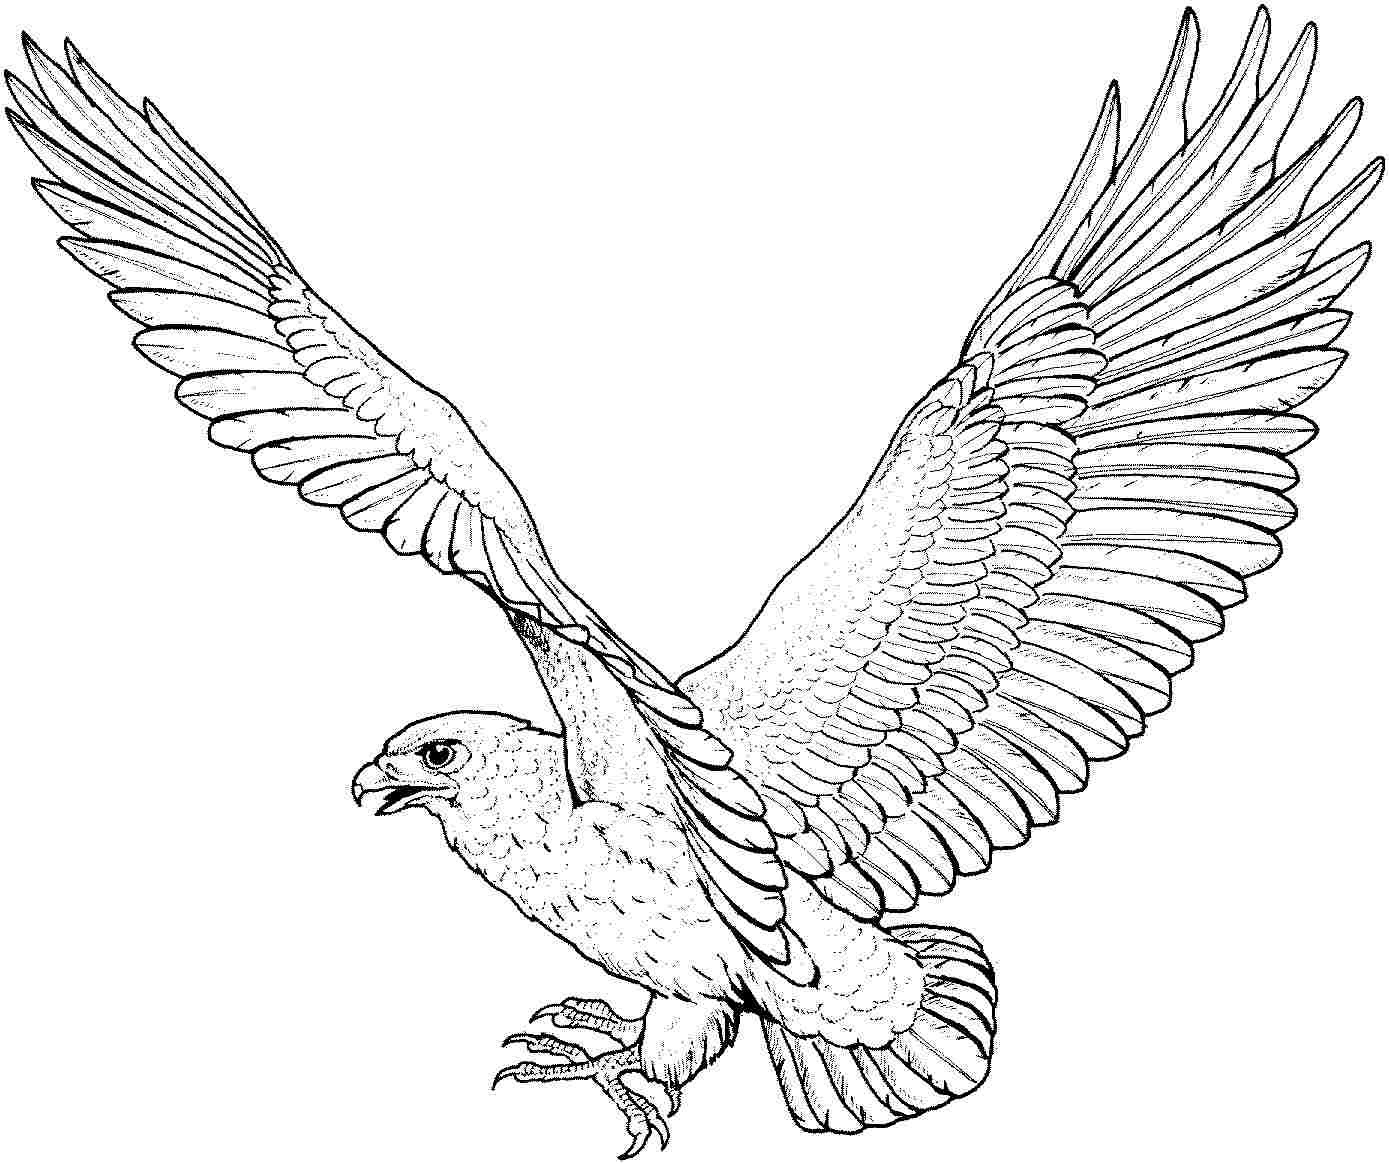 eagle colouring free printable eagle coloring pages for kids eagle colouring